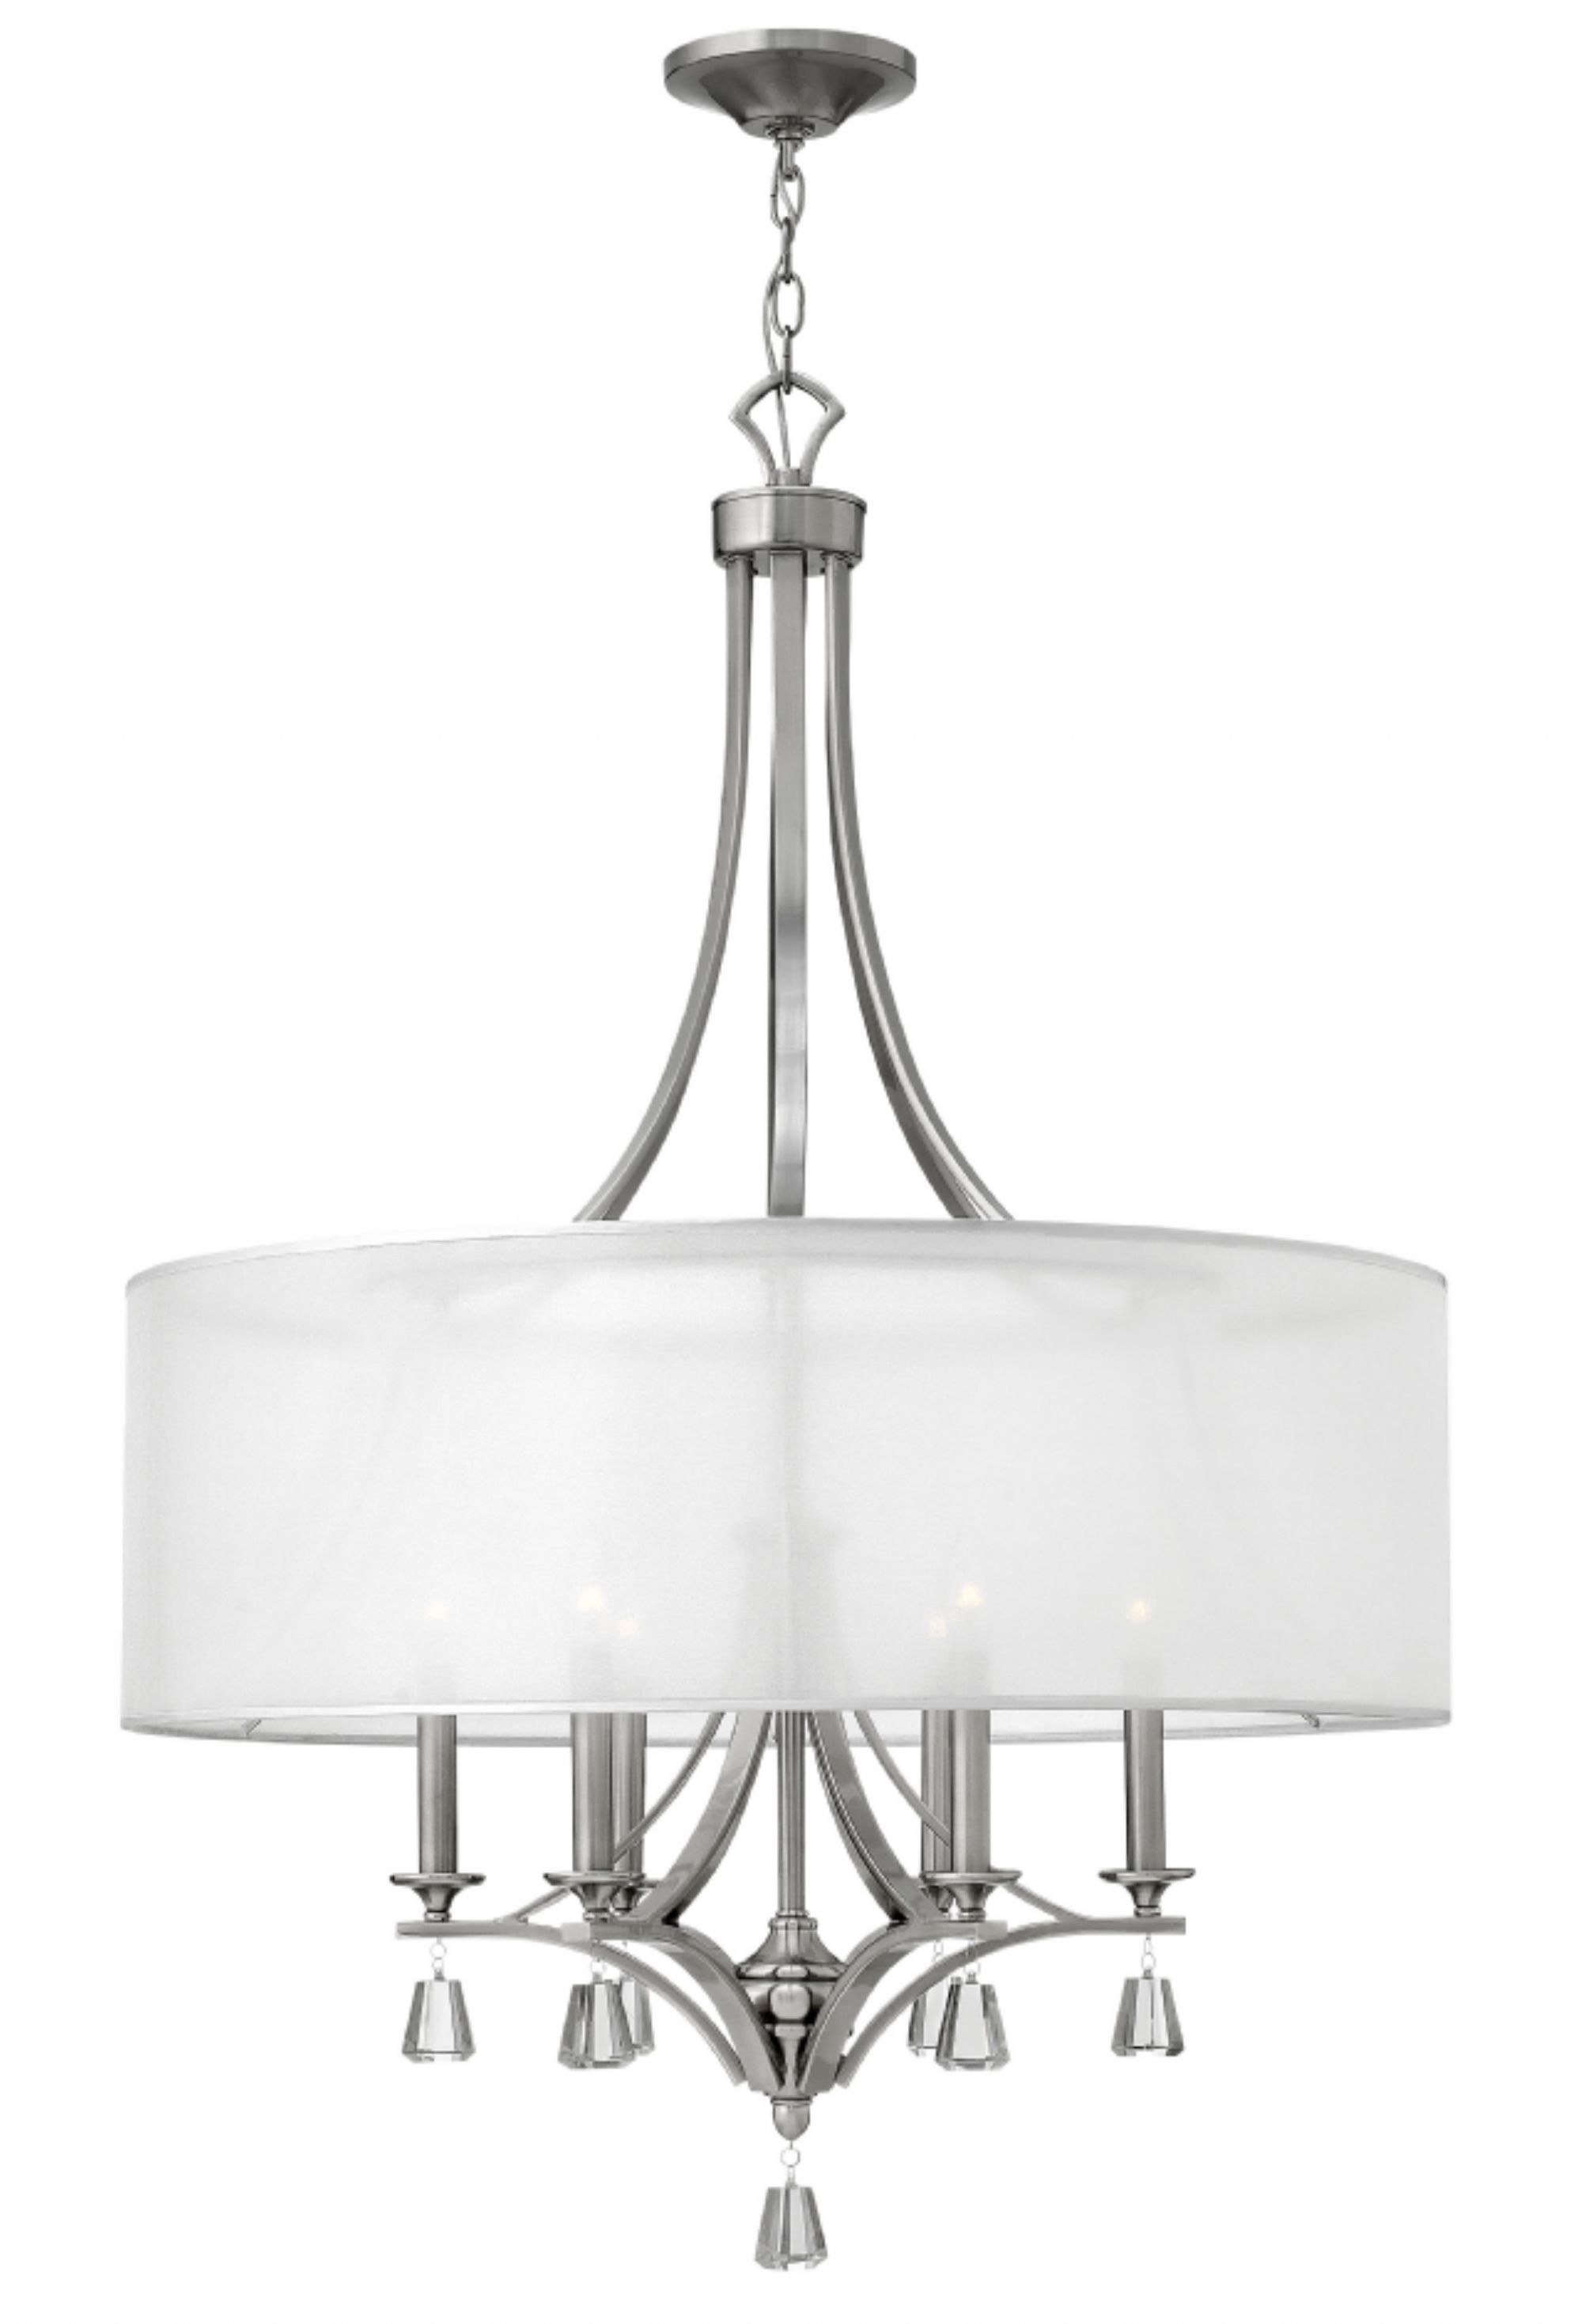 Hinkley lighting carries many brushed nickel mime chandeliers light hinkley lighting carries many brushed nickel mime chandeliers light fixtures that can be used to aloadofball Gallery